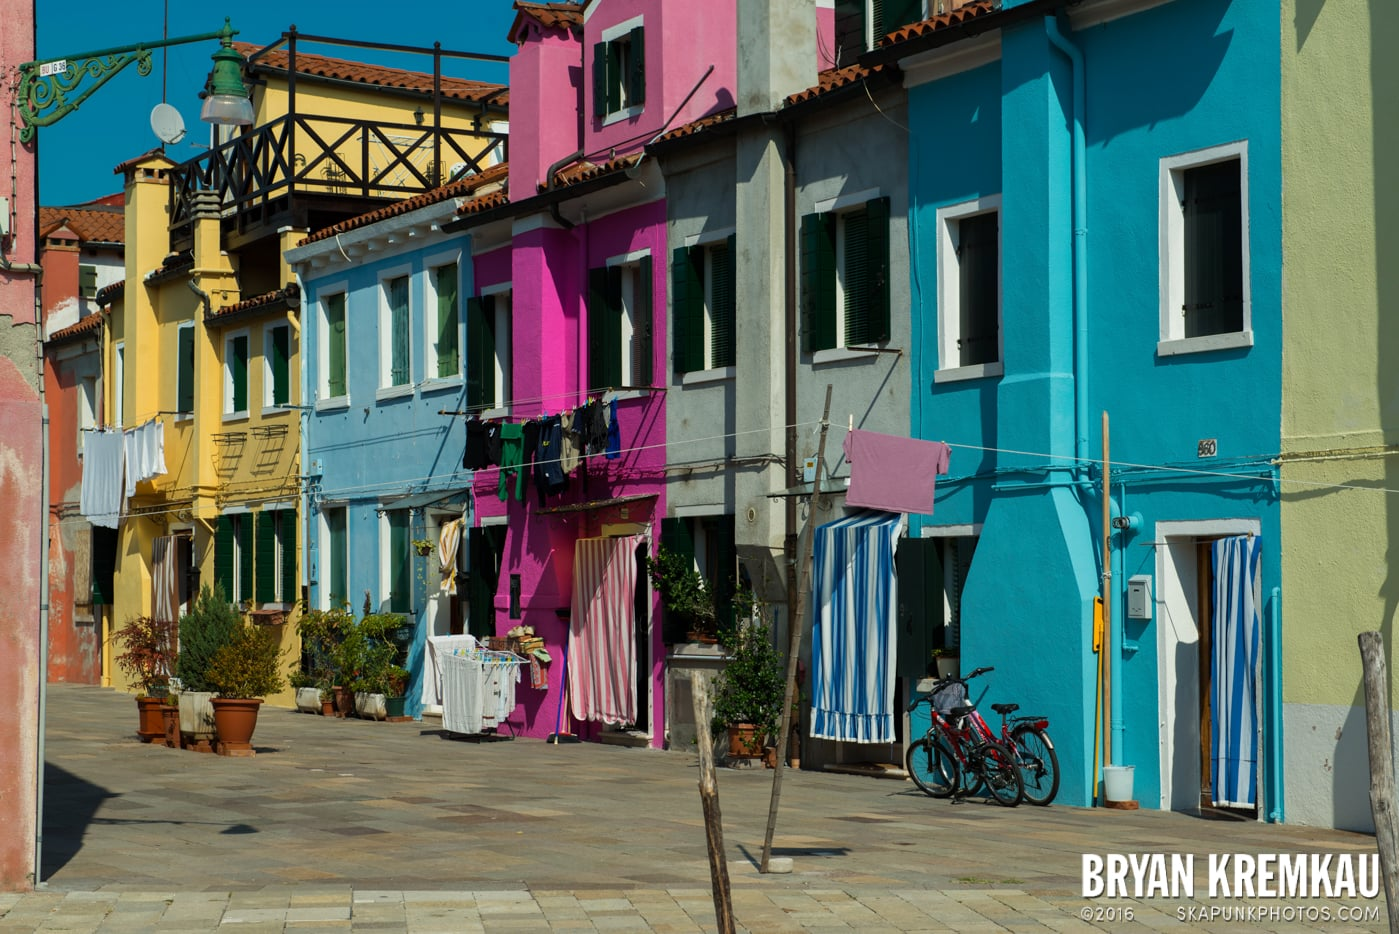 Italy Vacation - Day 6: Murano, Burano, Venice - 9.14.13 (23)